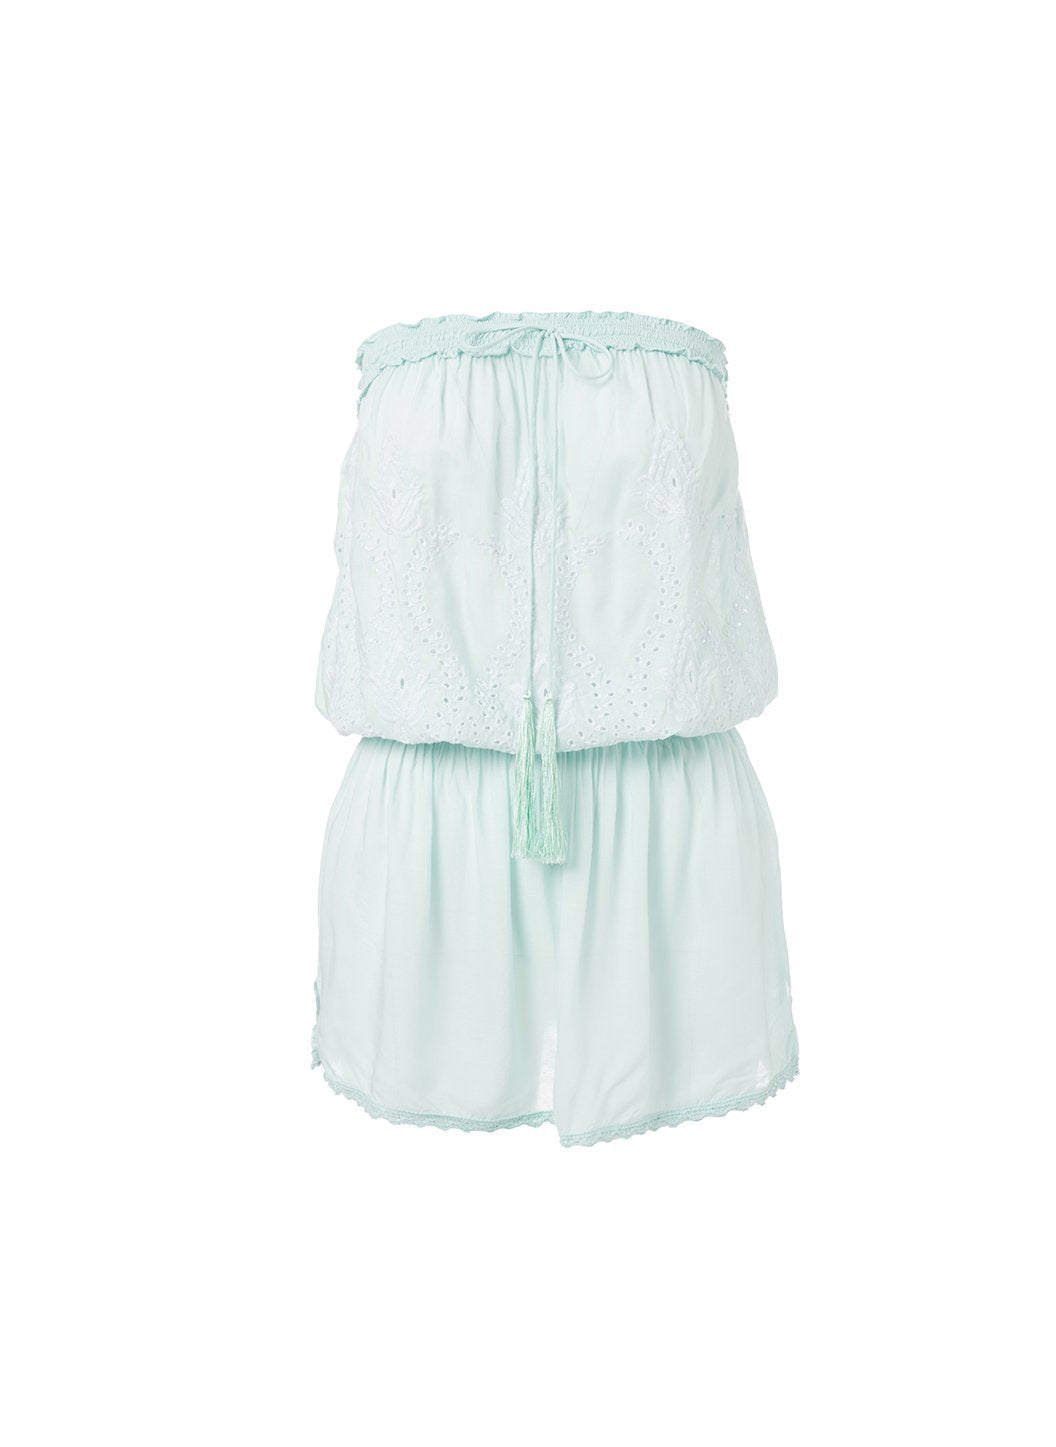 fruley mint bandeau embroidered short beach dress 2019